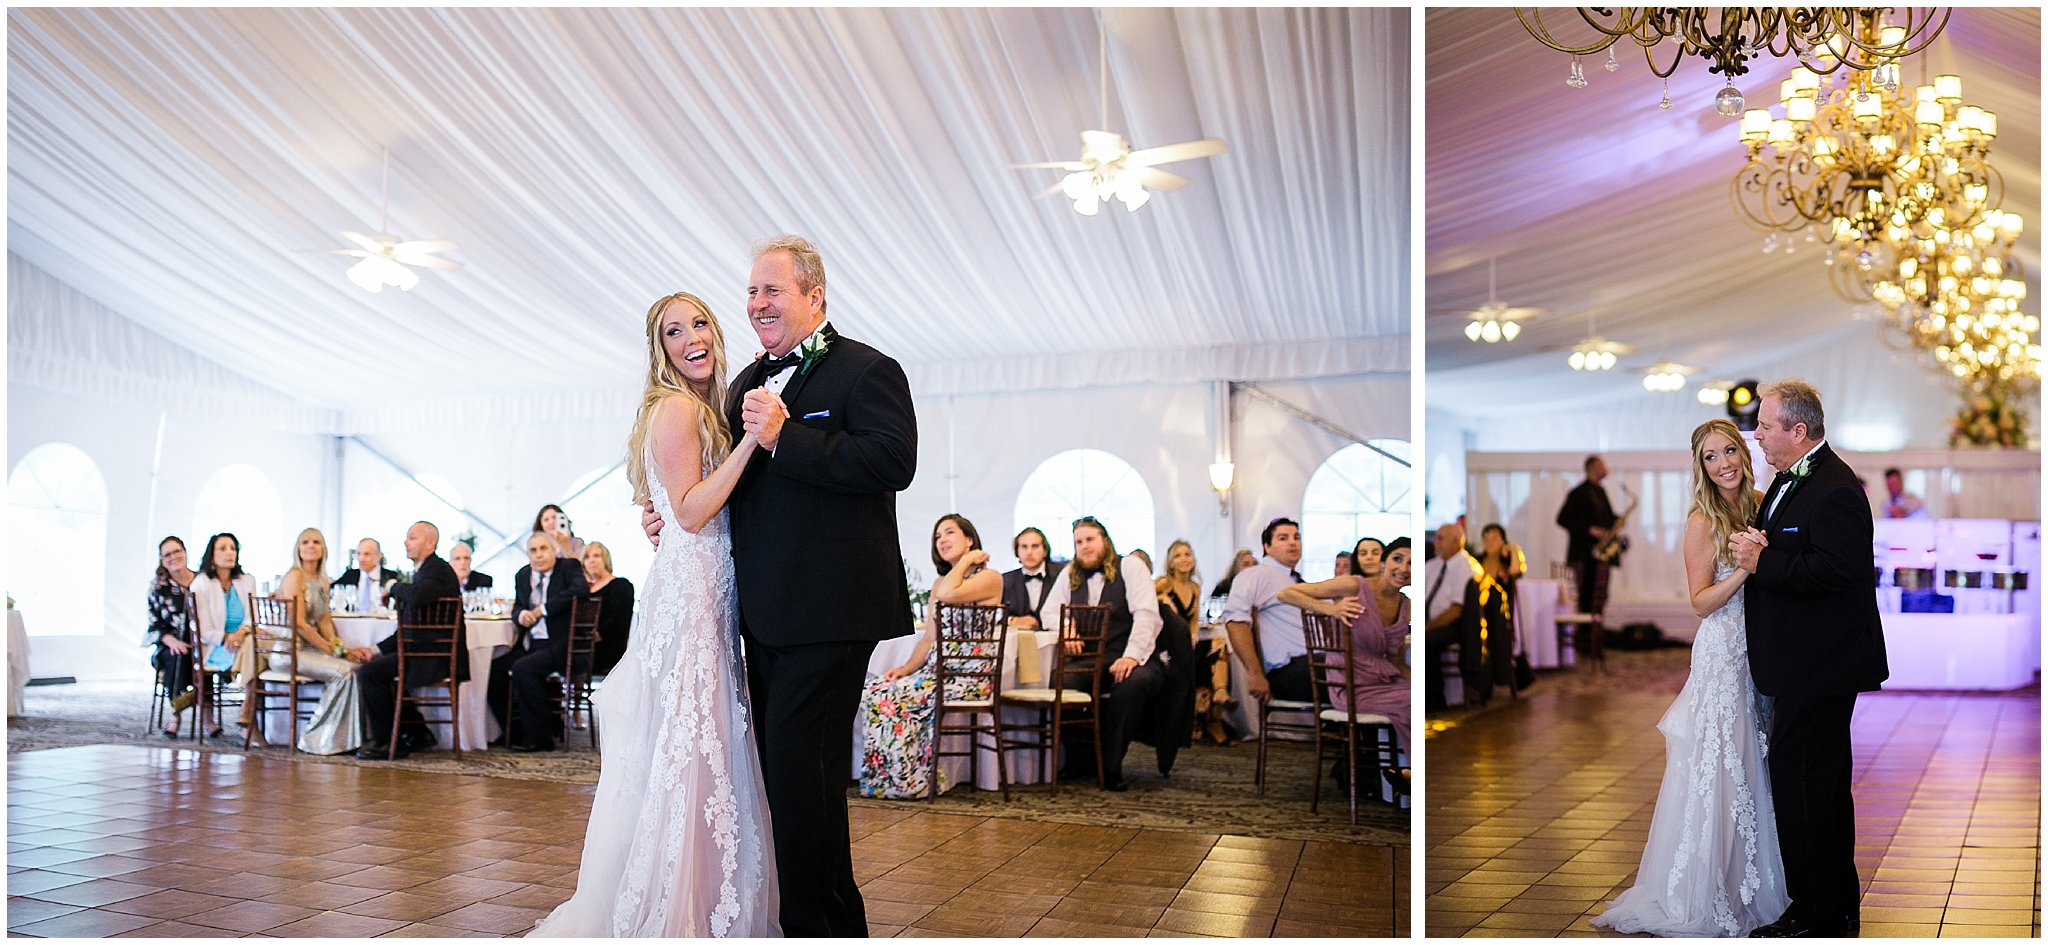 West Hills Country Club Wedding July Wedding Hudson Valley Wedding Hudson Valley Wedding Photographer Sweet Alice Photography82.jpg